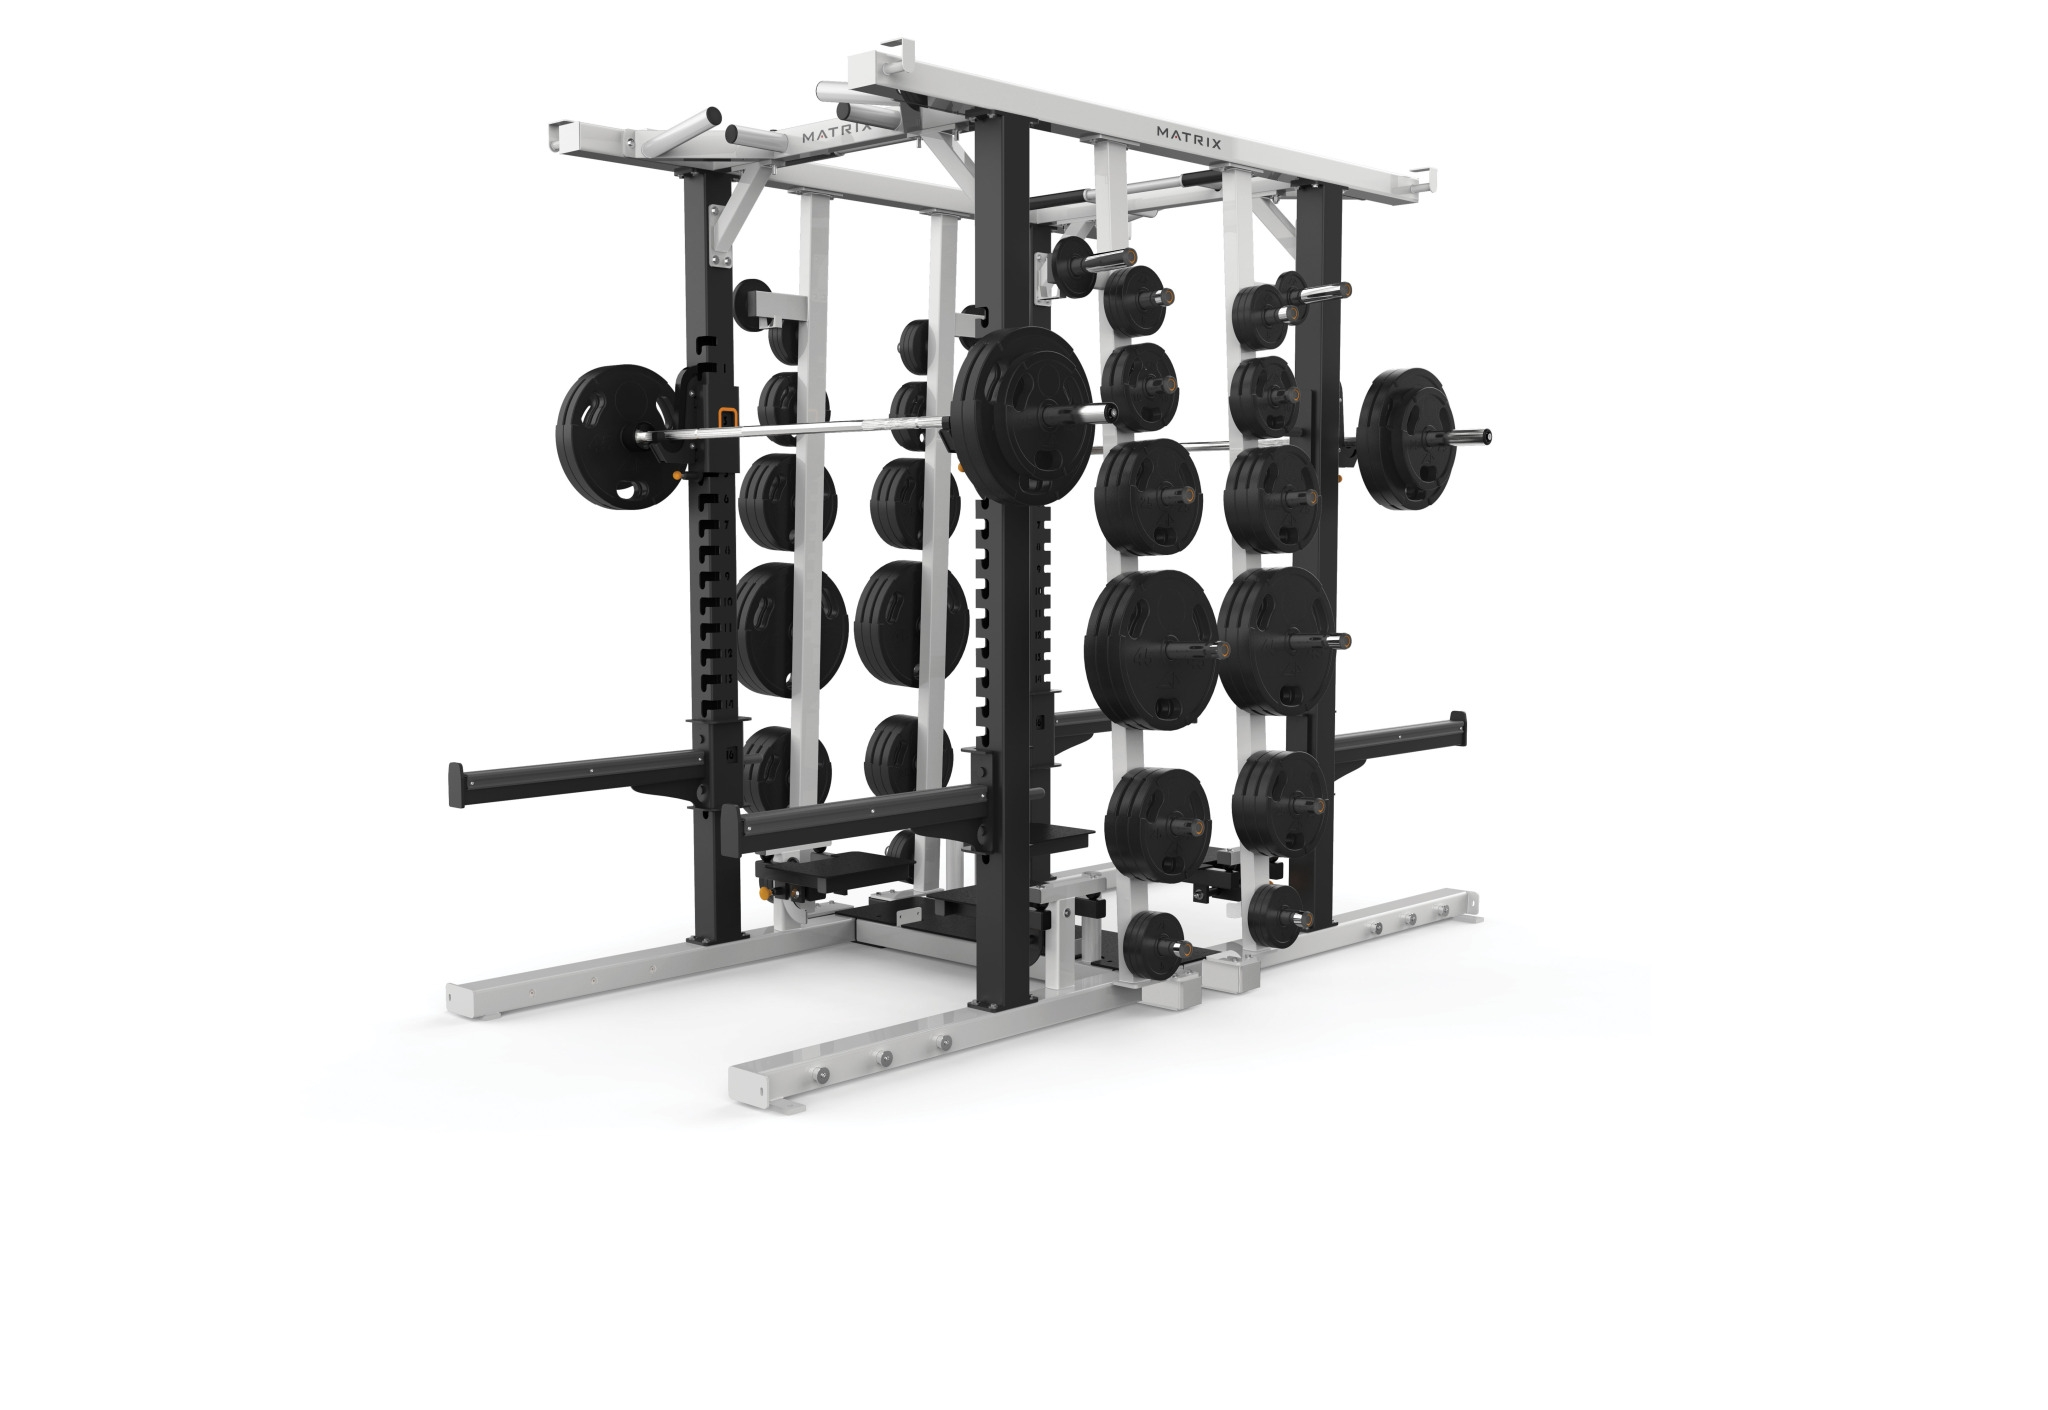 MEGA Double Half Rack